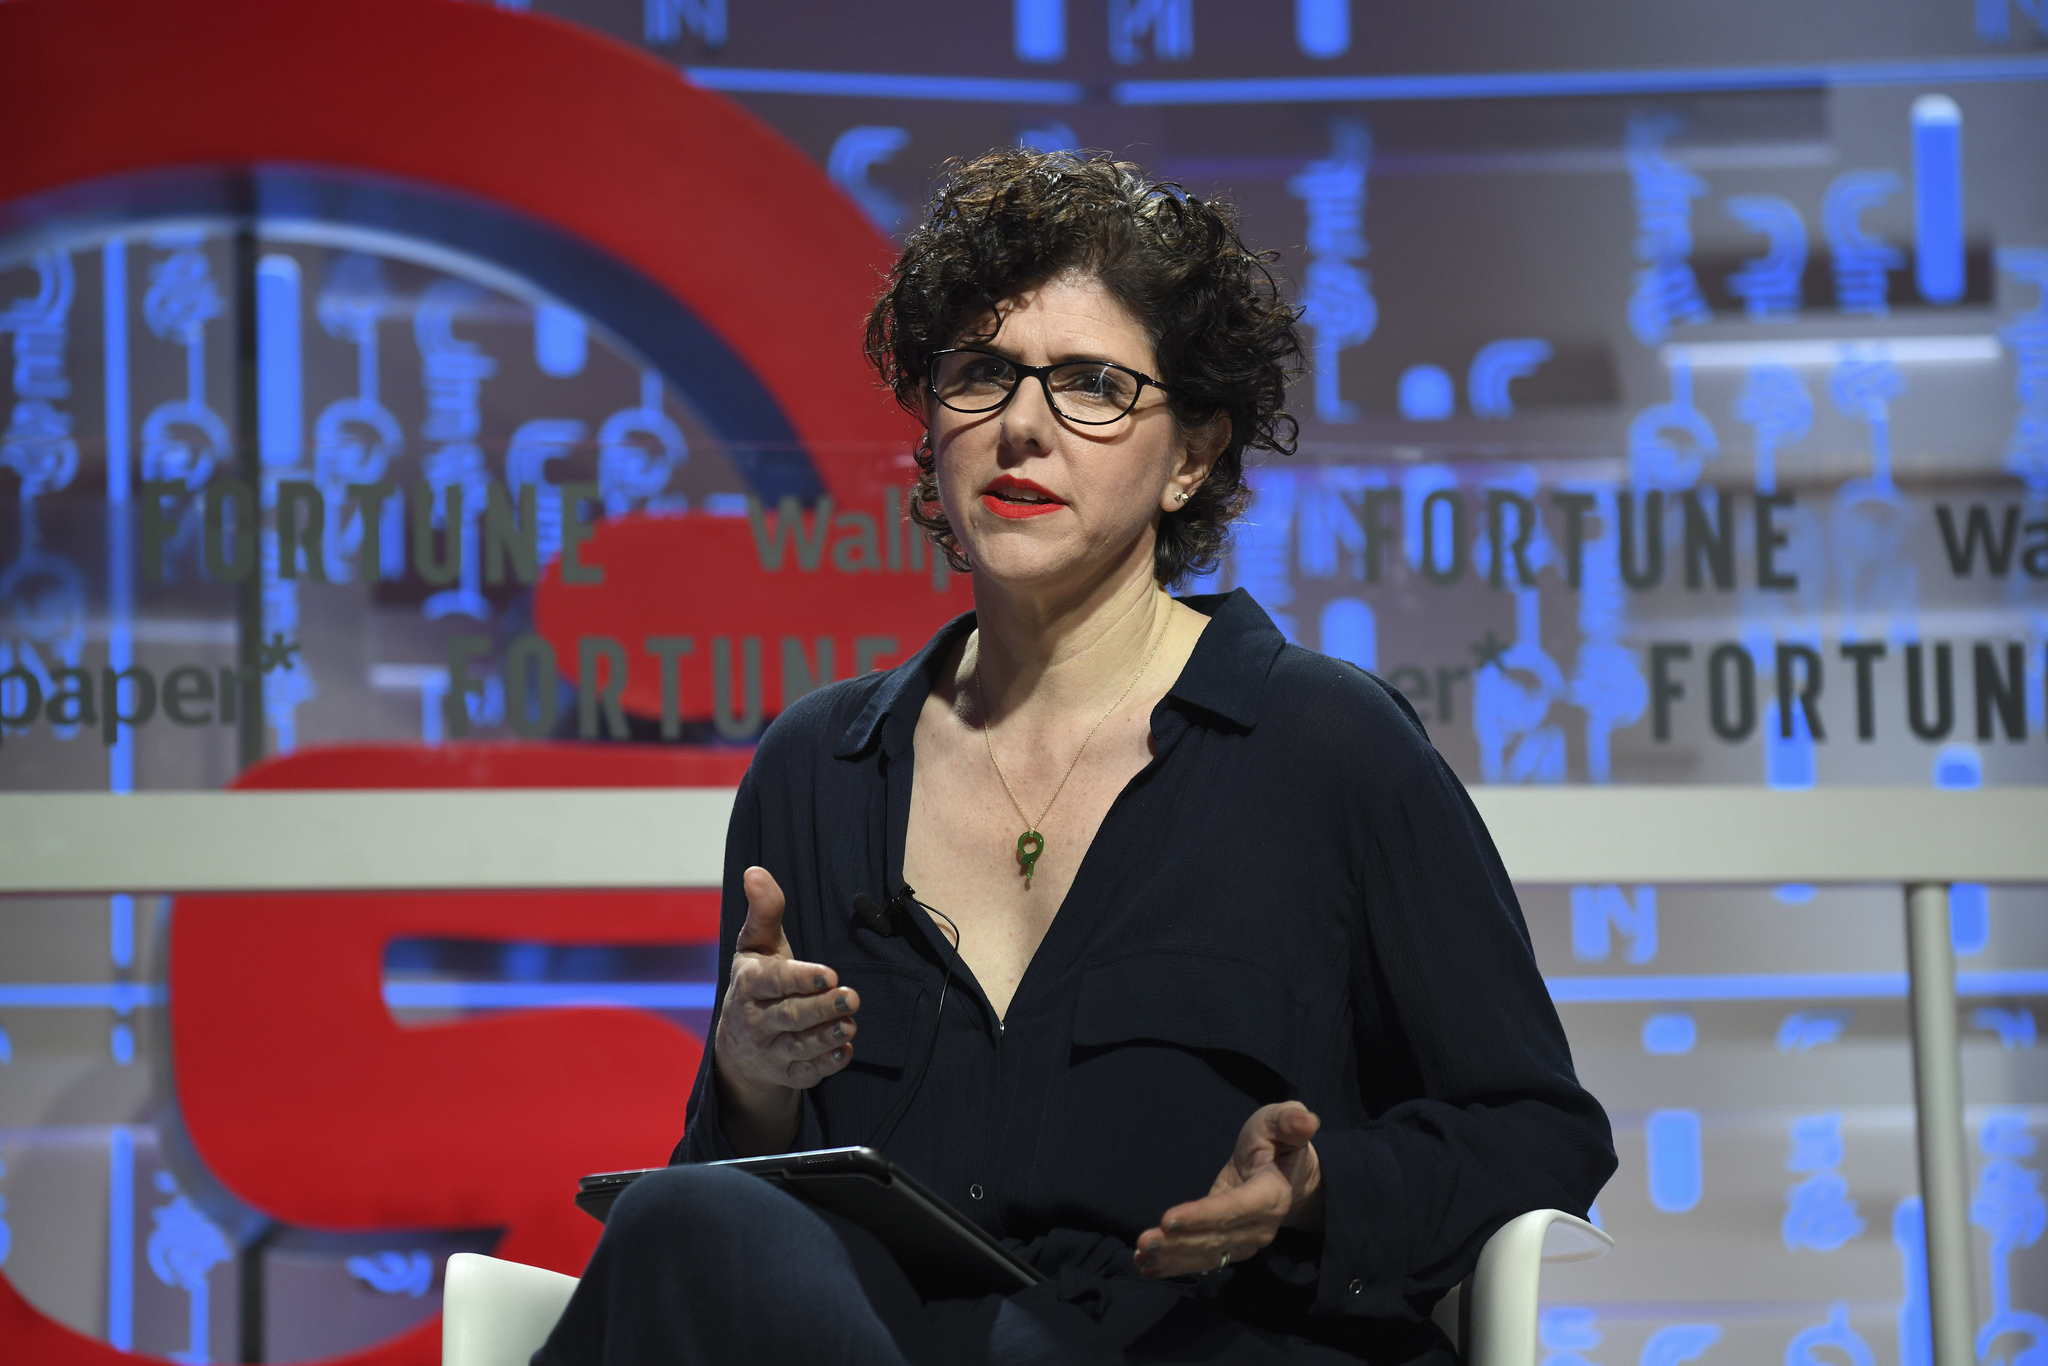 Margaret Gould Stewart, vice president of product design at Facebook, speaking at the 2019 Fortune Brainstorm Design conference in Singapore.